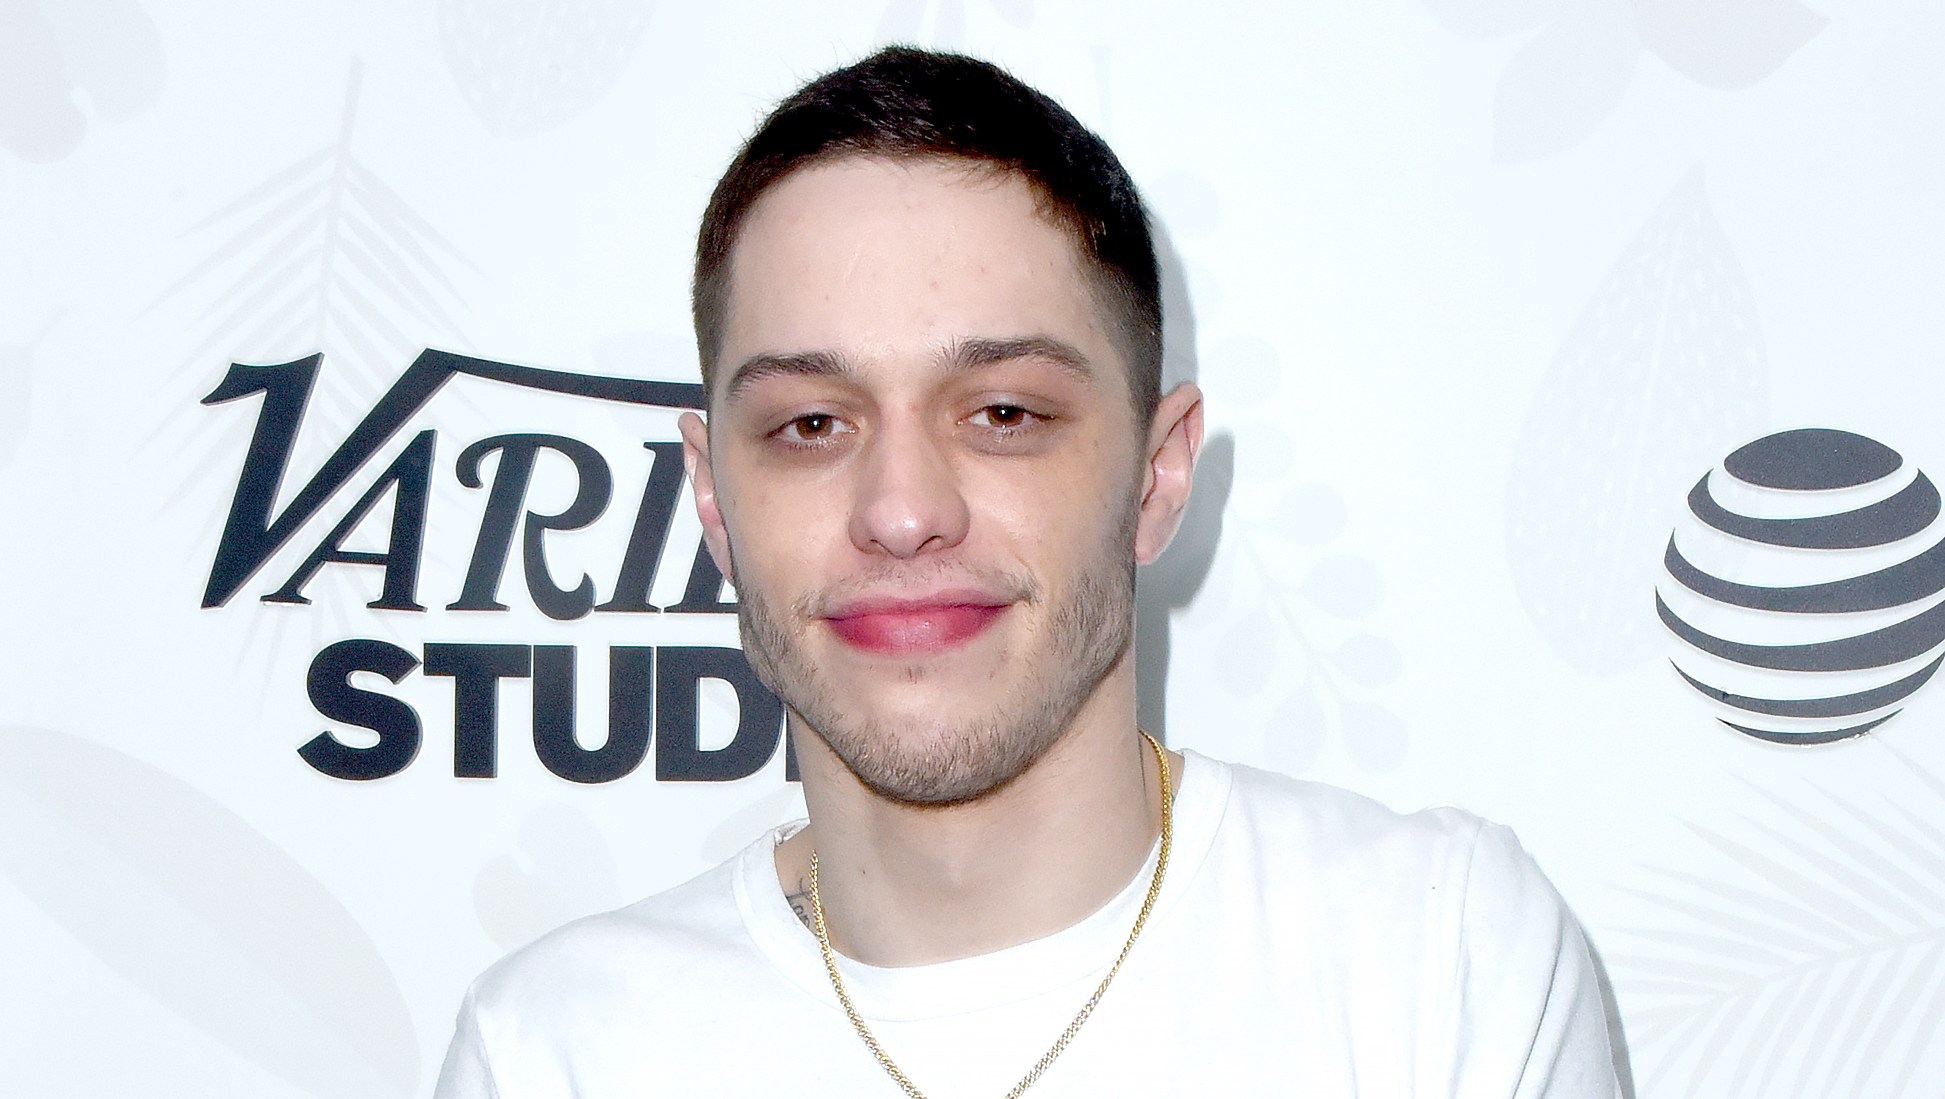 Pete Davidson Returns to Instagram After Nearly Five Months Offline